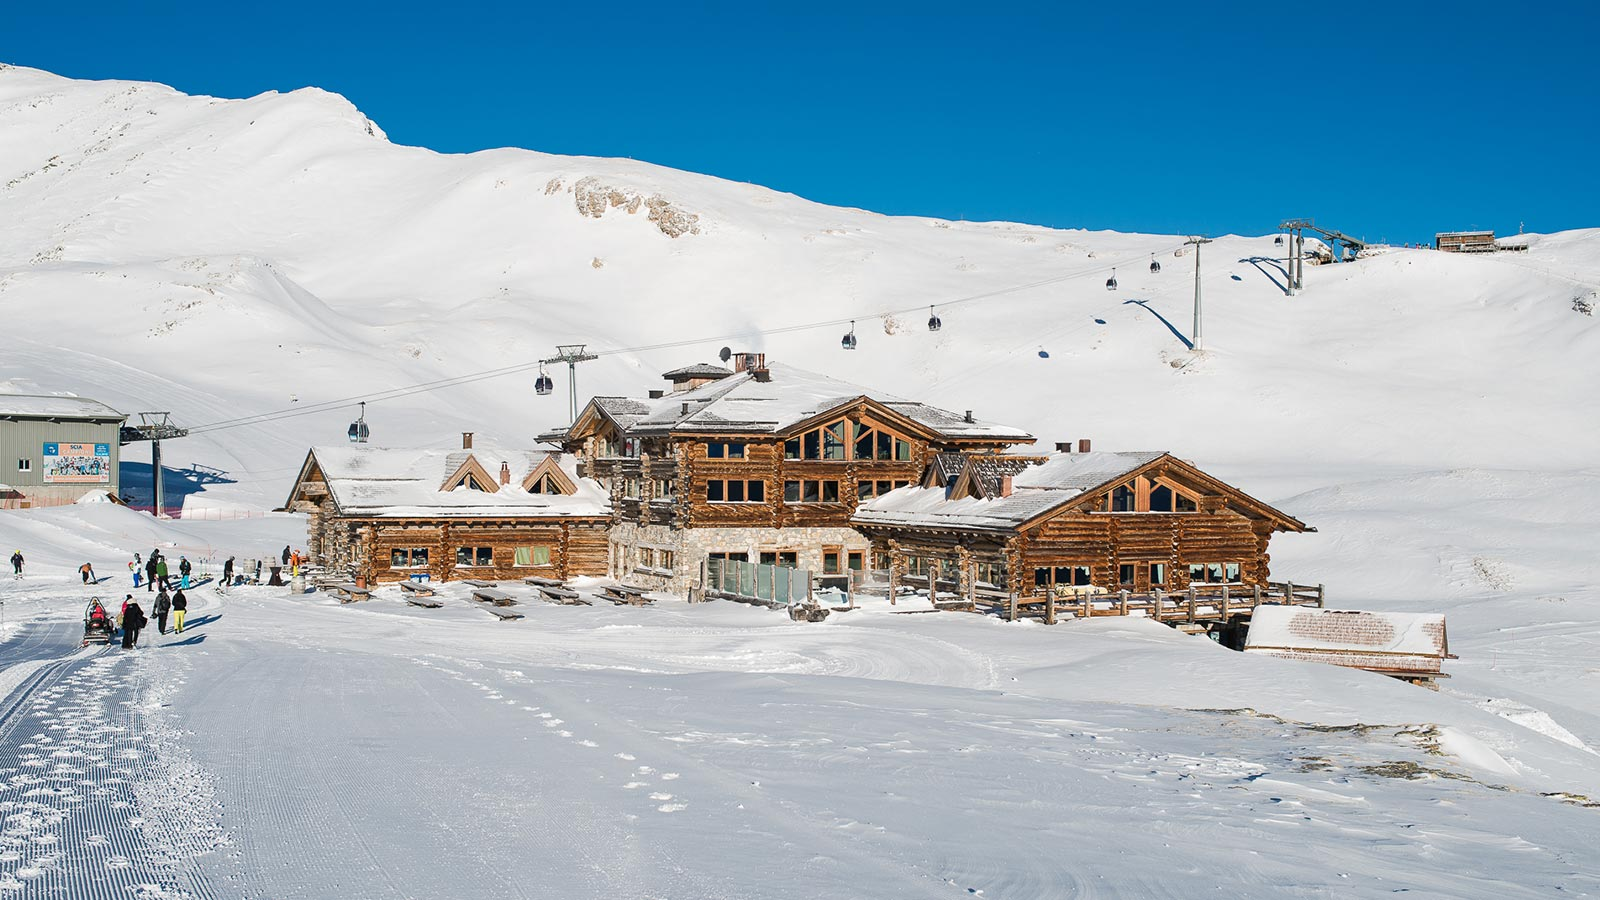 Outside of the moutain lodge during the winter at Santa Caterina Valfurva in the heart of the Stelvio National Park